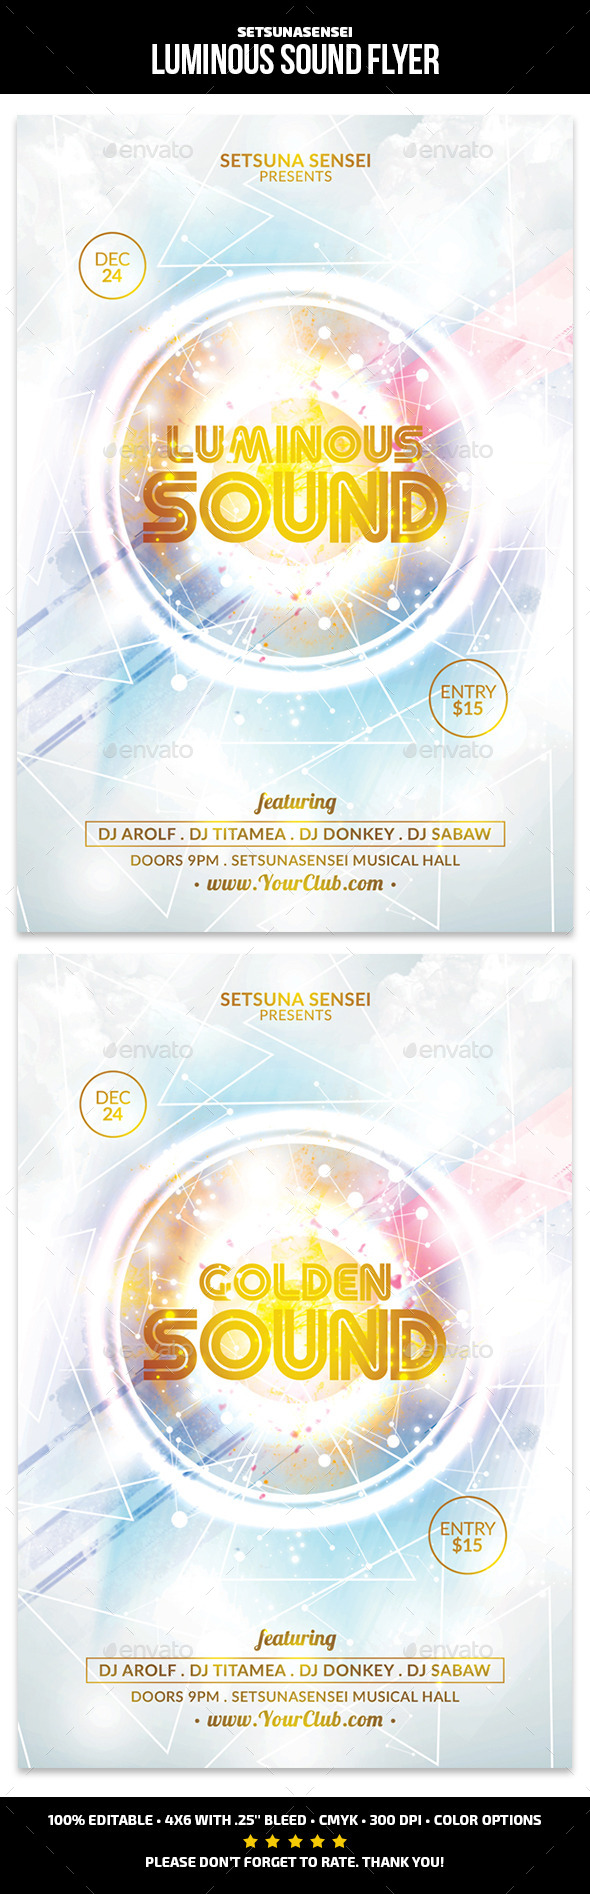 GraphicRiver Luminous Sound Flyer 9553999